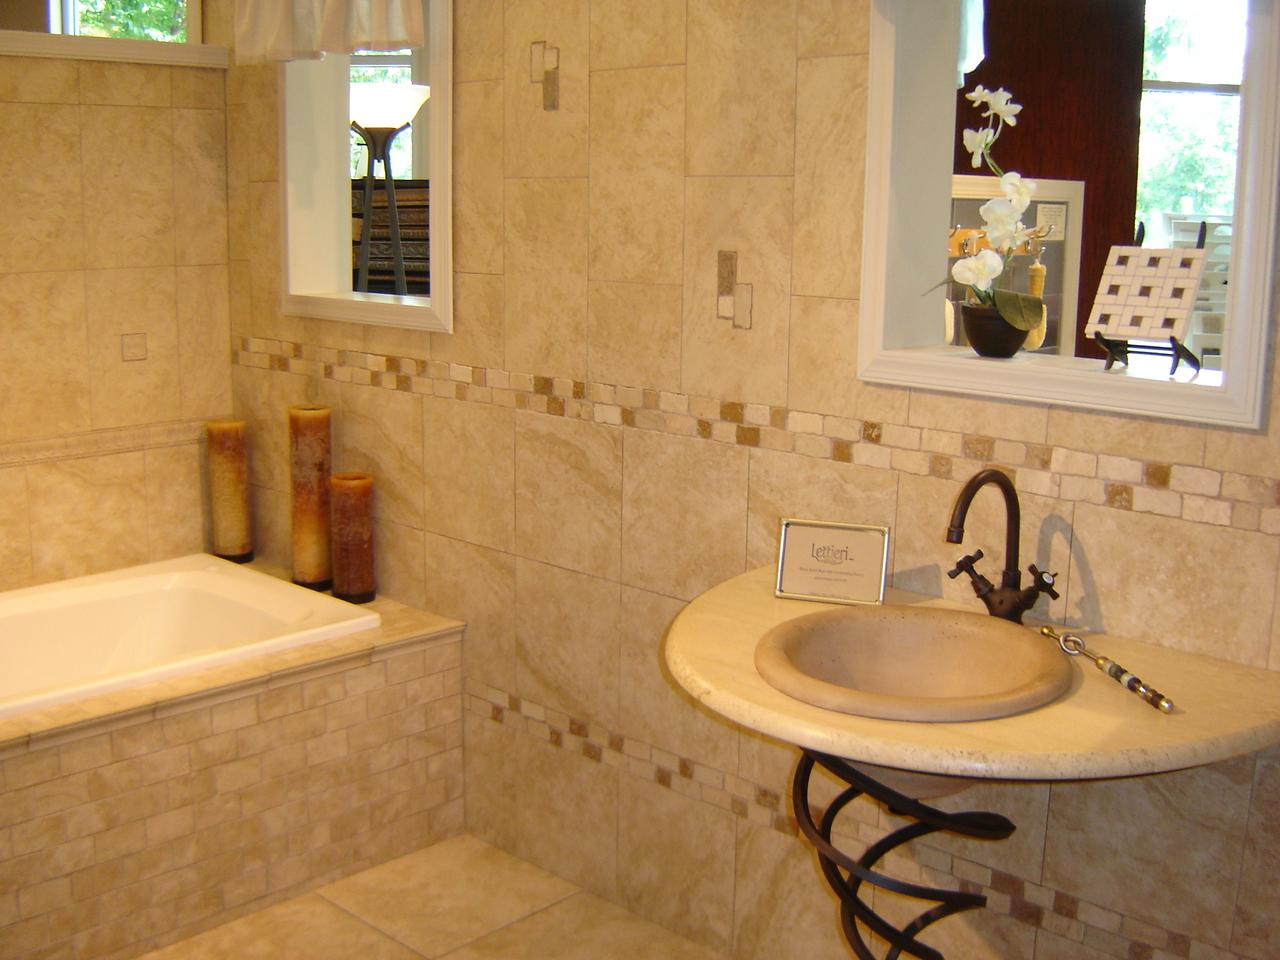 Small Bathroom Remodel Ideas with Round Sink and Unique Vanity near White Bathtub on Tile Wall